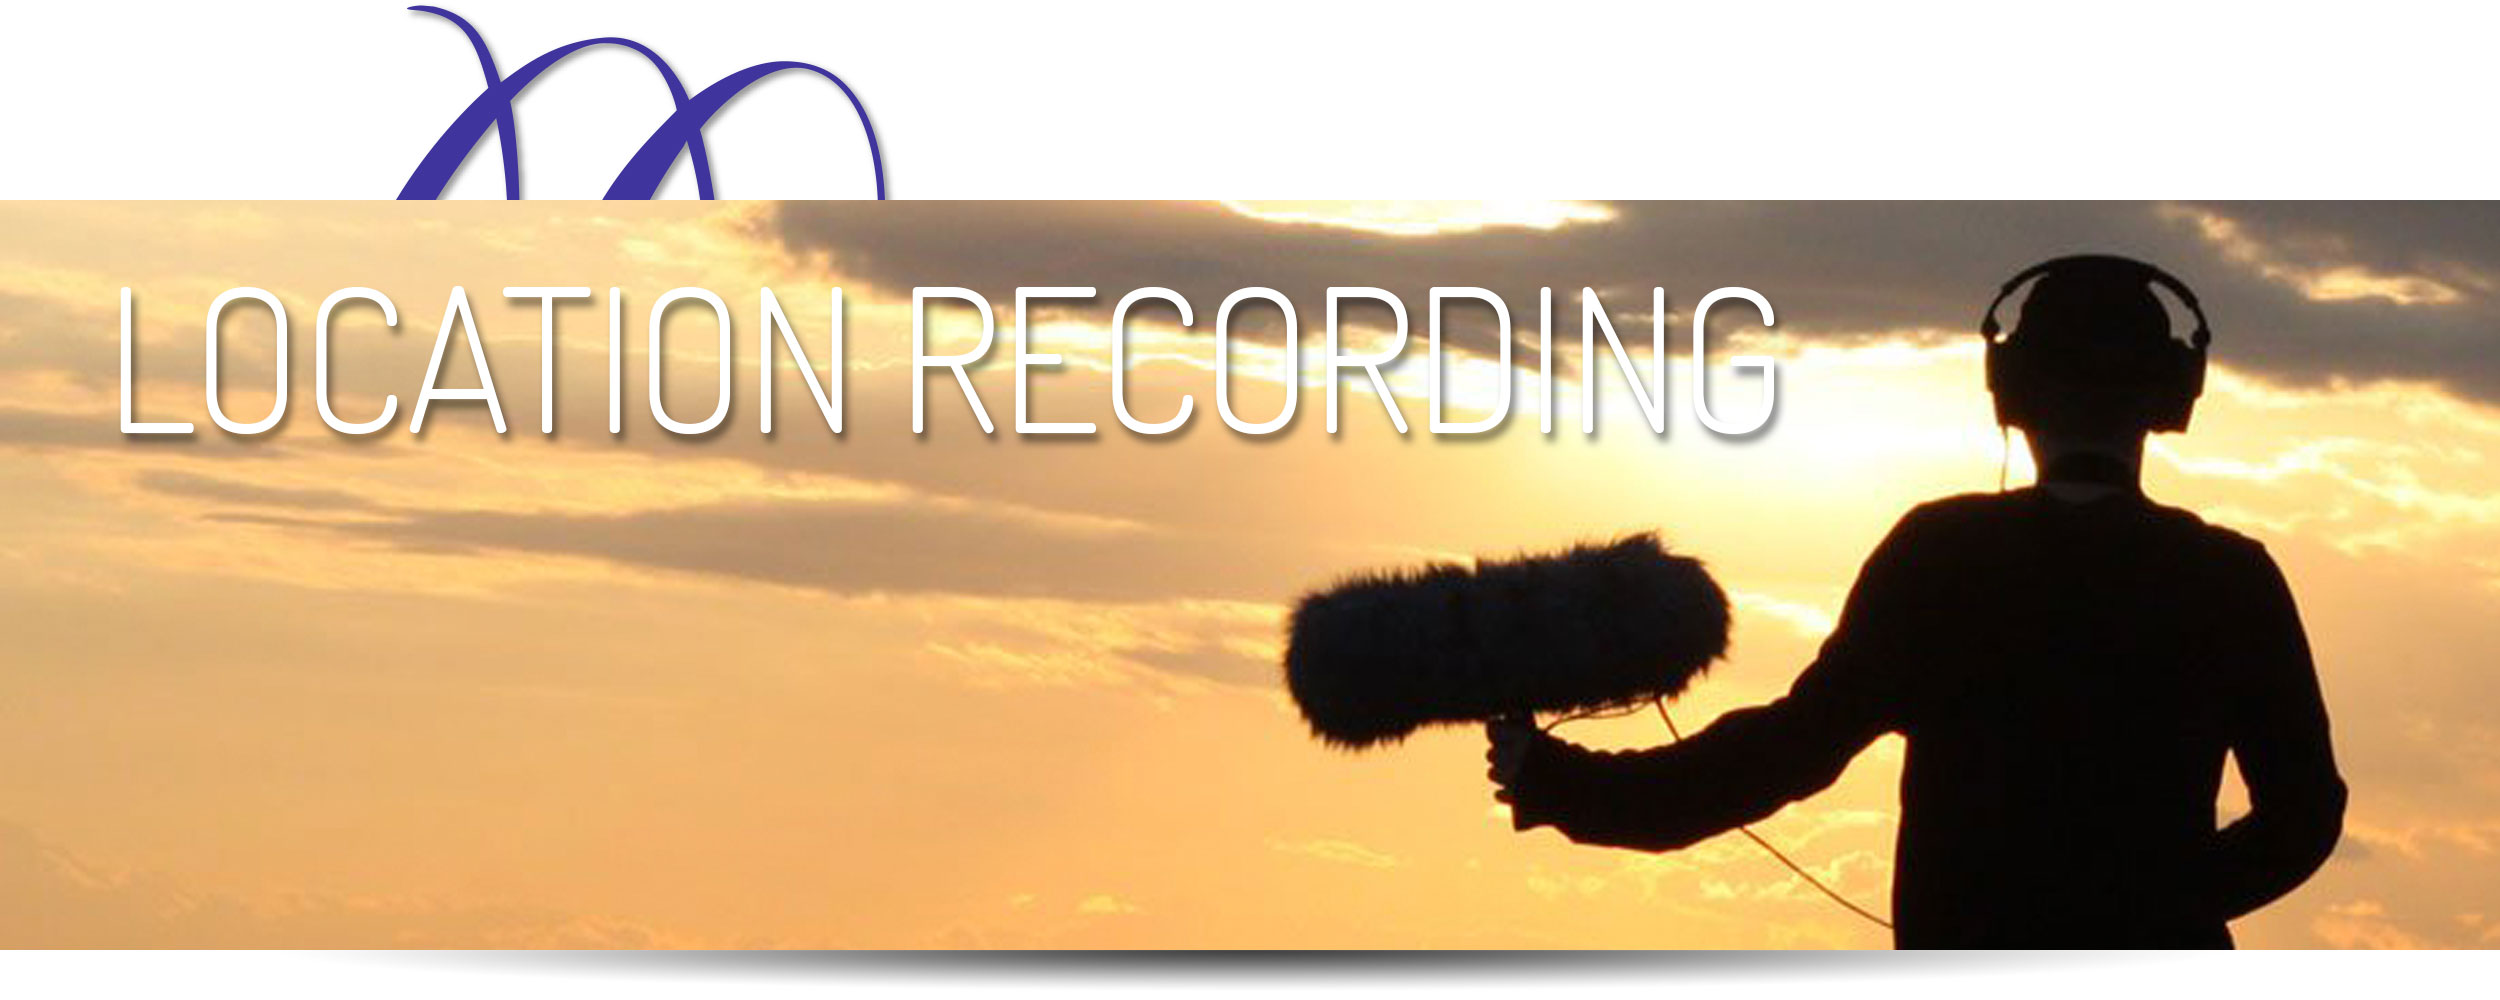 Location Recording, Remote Recording, Field Recording